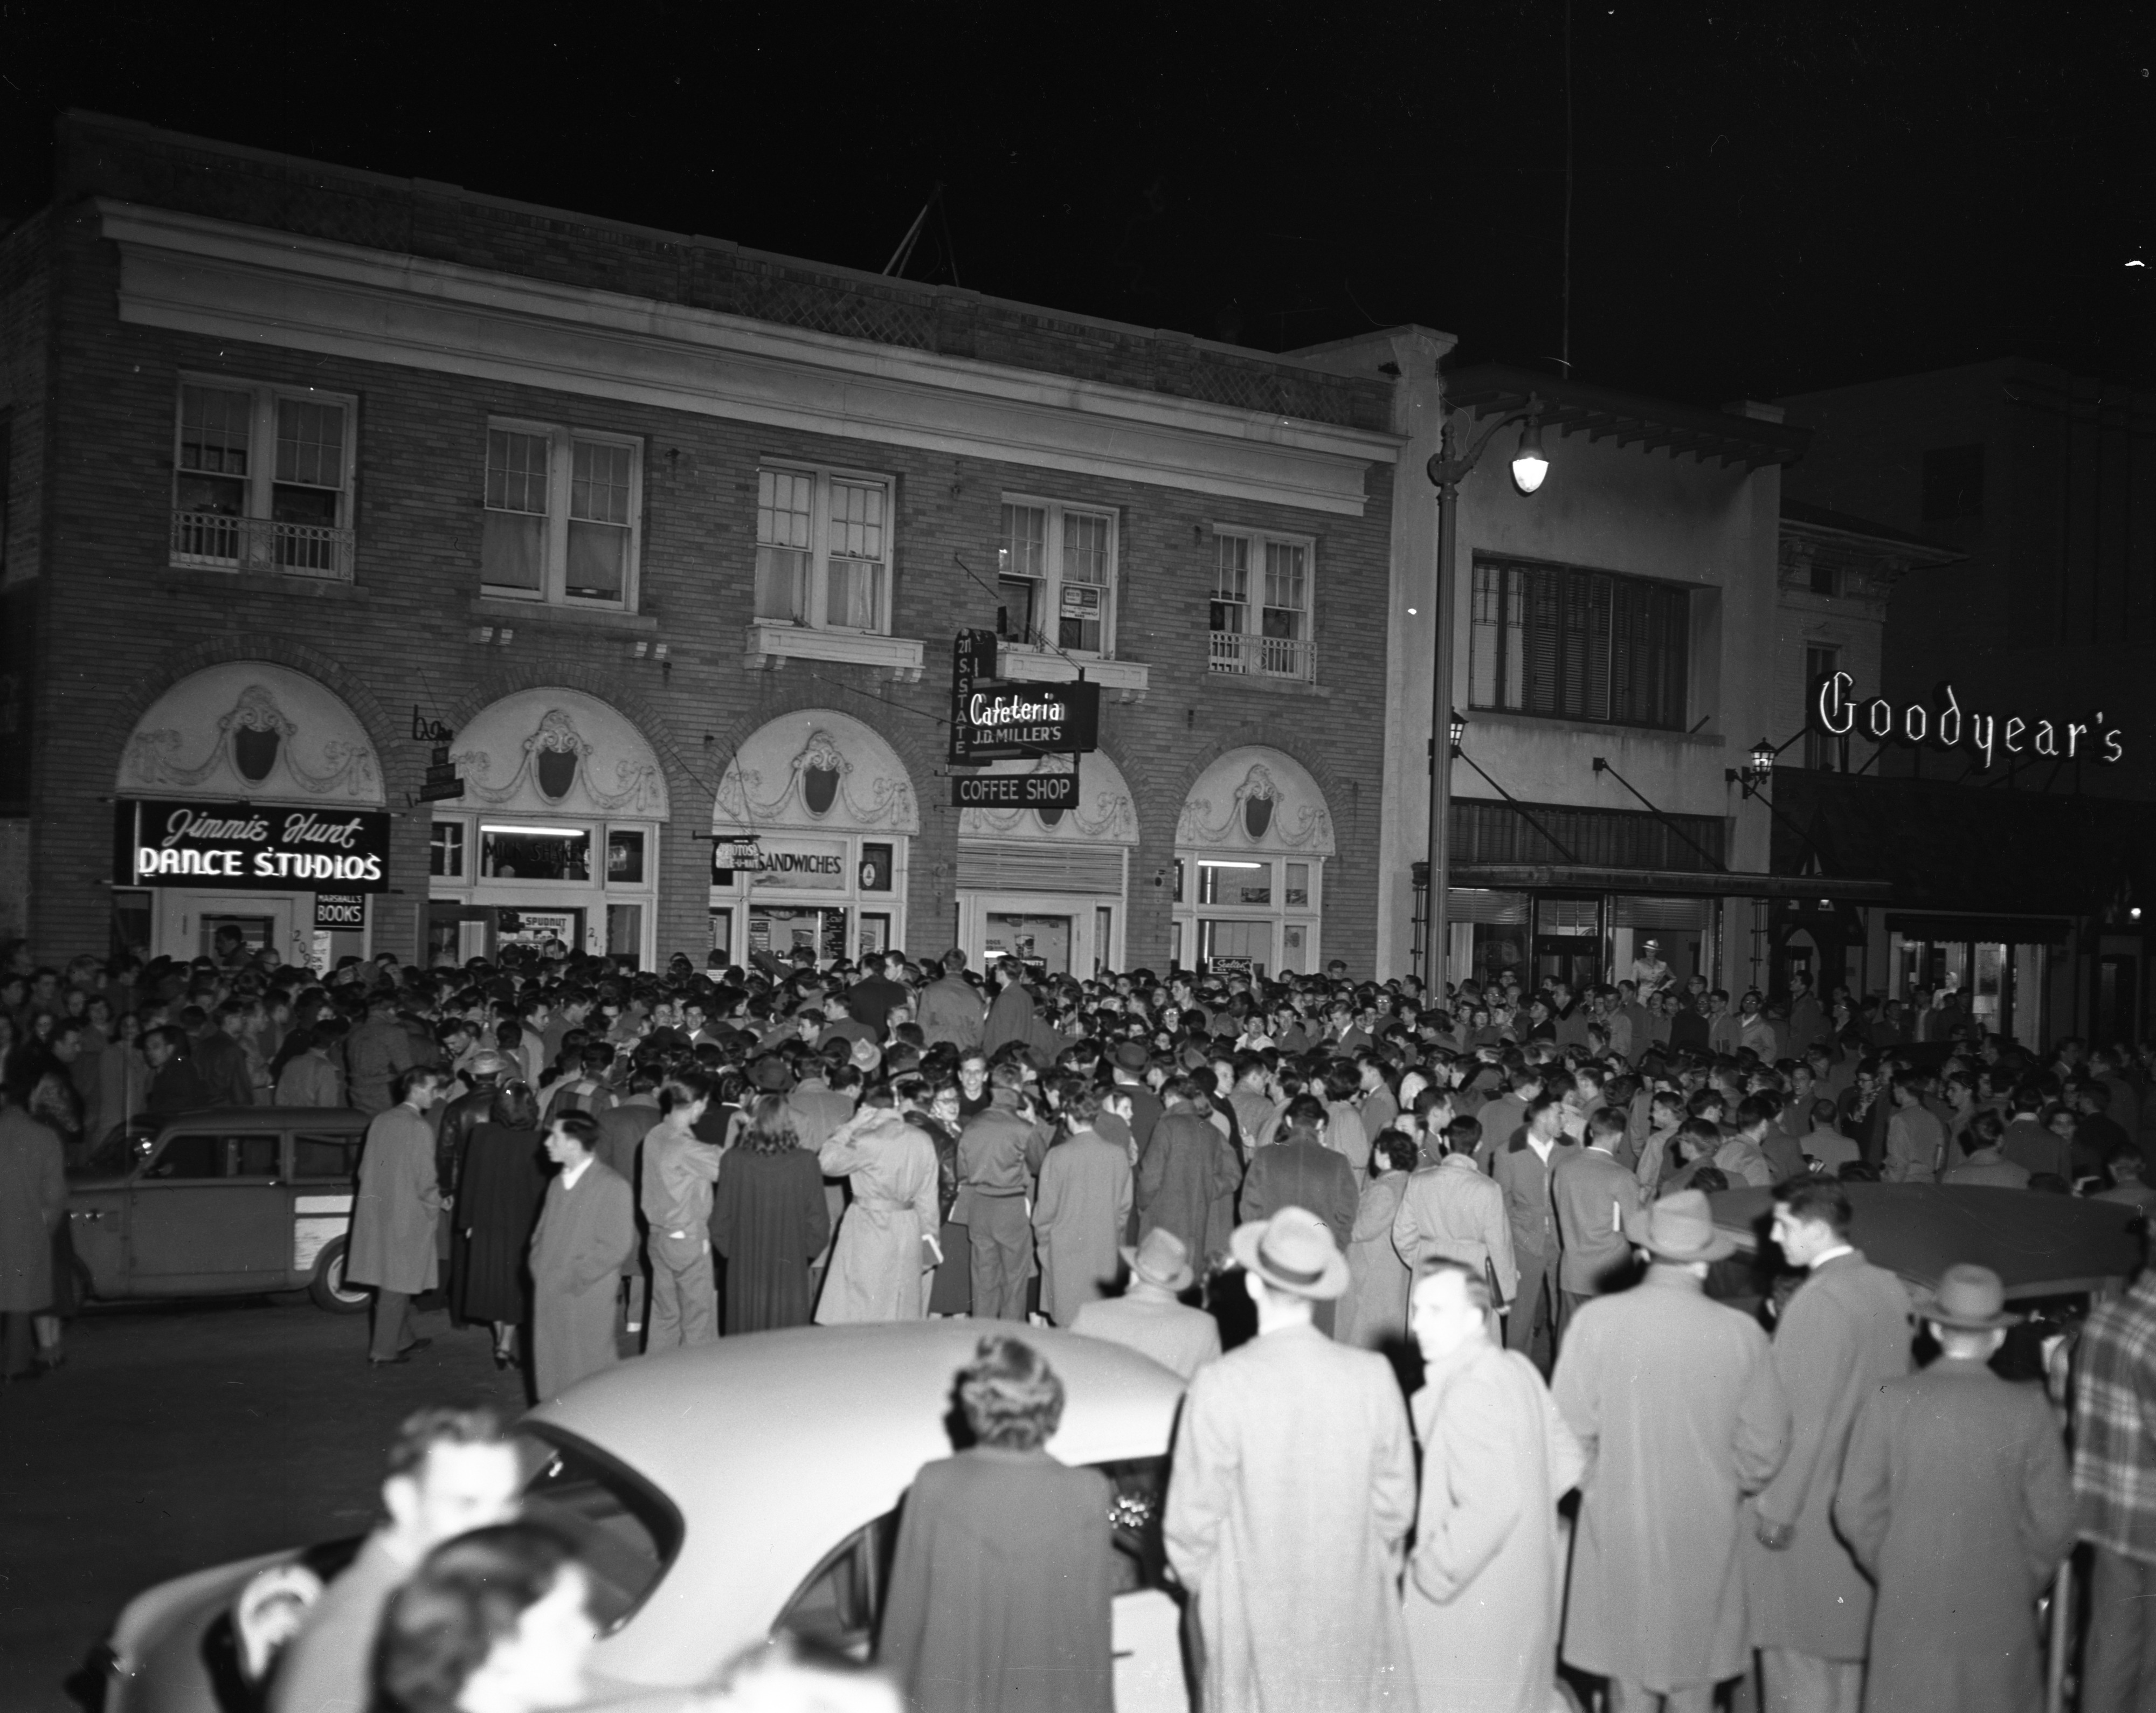 2,000 gather outside a J. D. Miller's Cafeteria and Coffee Shop to hear debate on Communism versus Capitalism, April 27, 1950 image